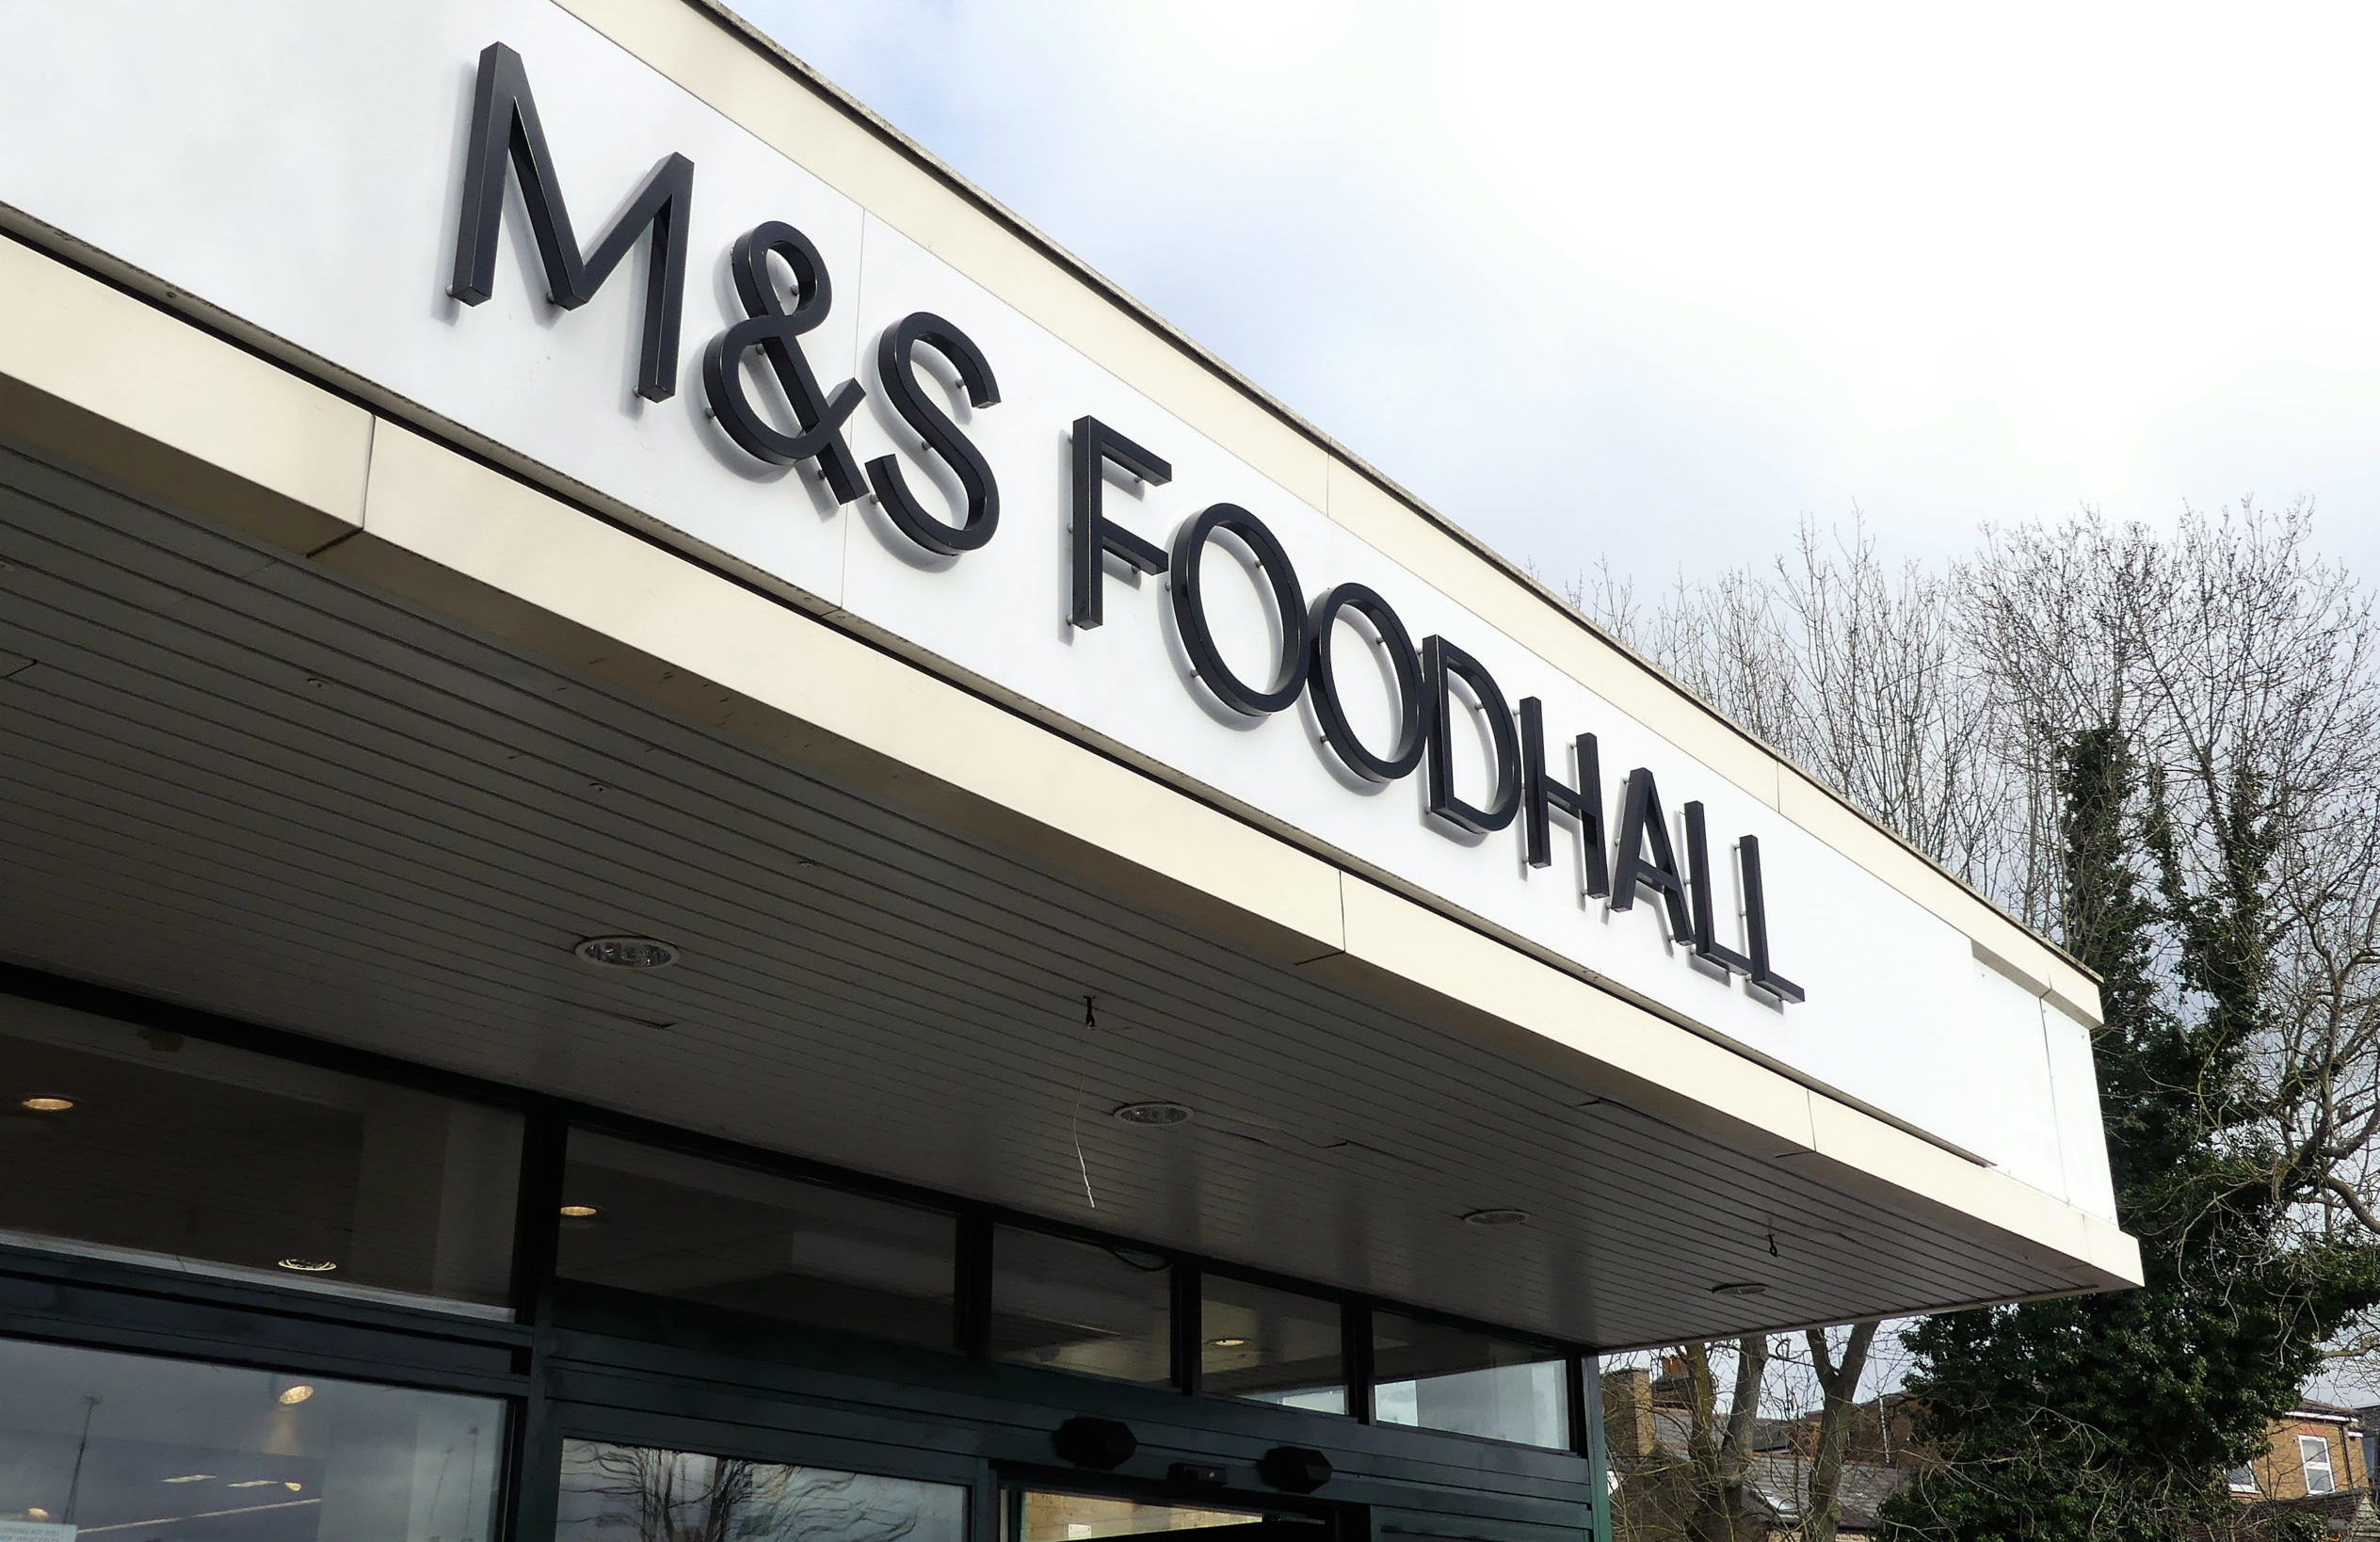 M&S has also launched initiatives such as the British meat food box.